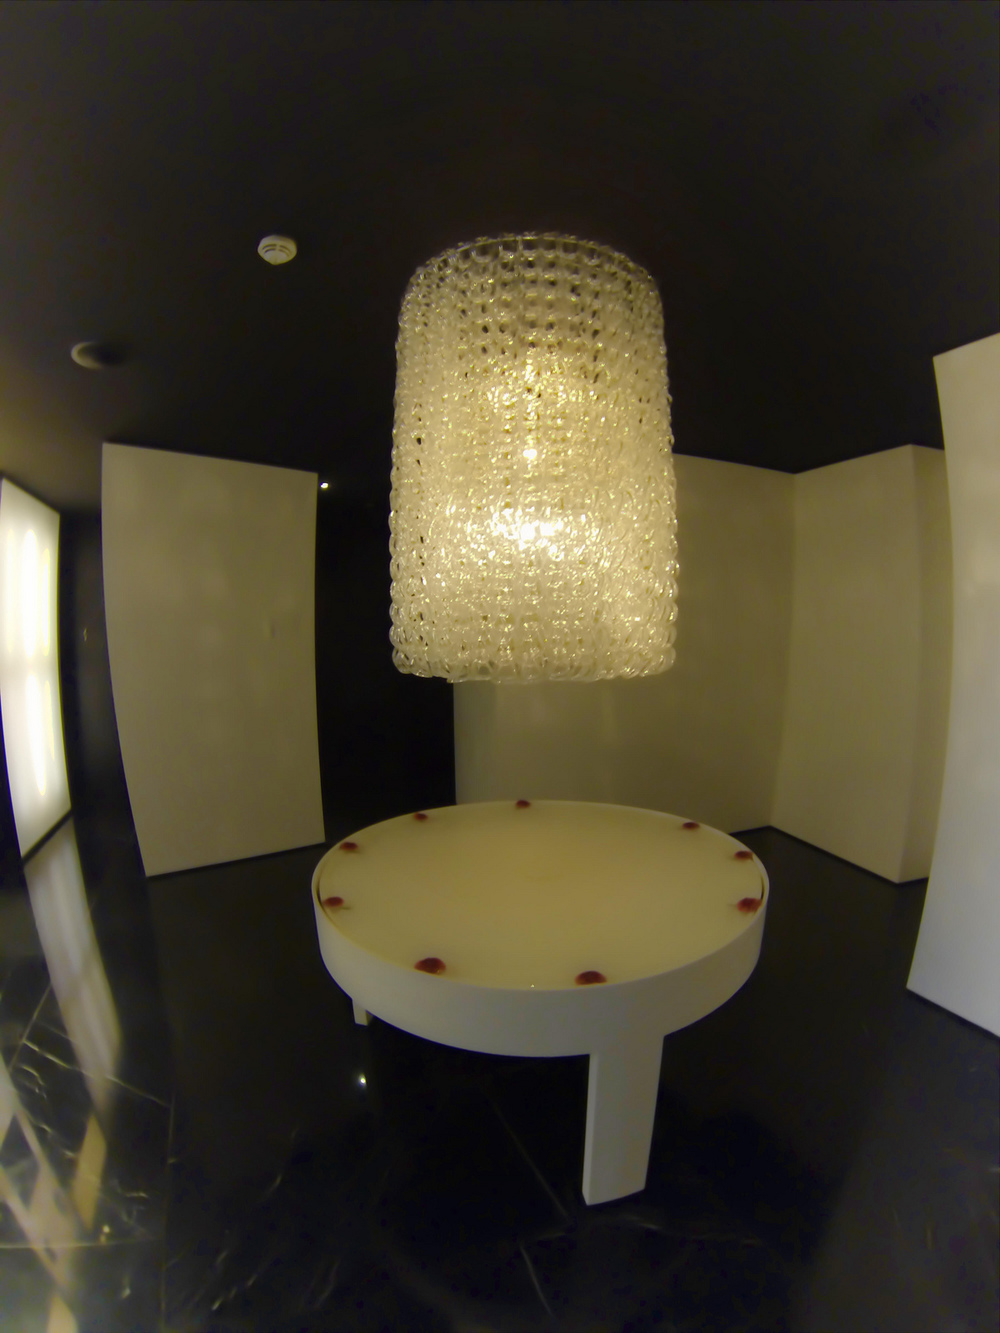 conservatorium-hotel-amsterdam-chandelier-table-fountain-outside-public-restrooms.jpg